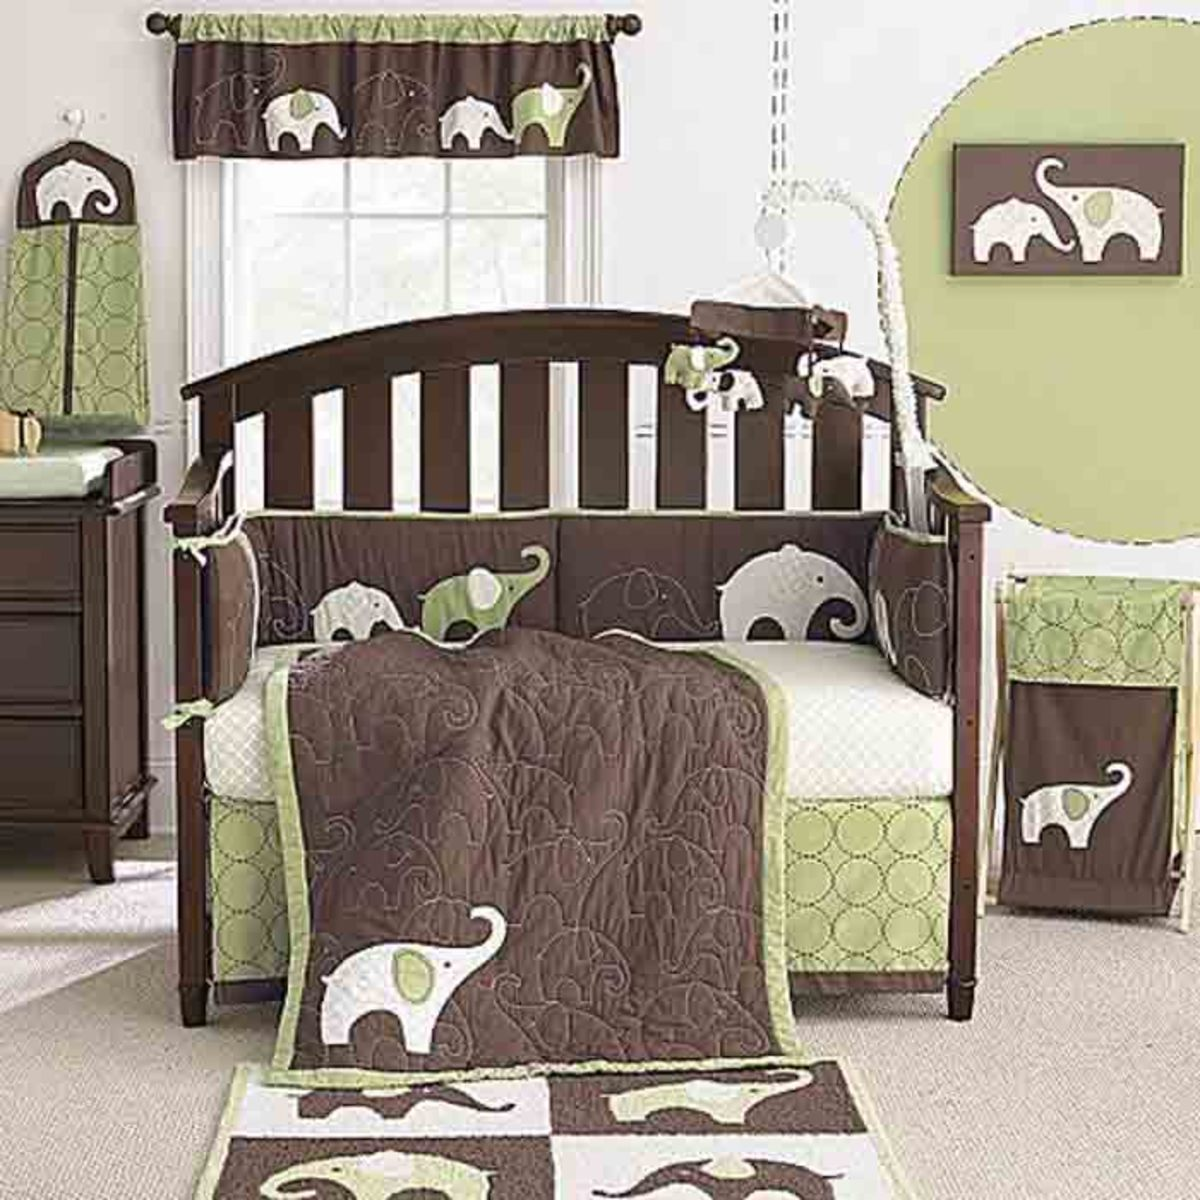 Decorating ideas for a baby boy nursery for Baby s room decoration ideas